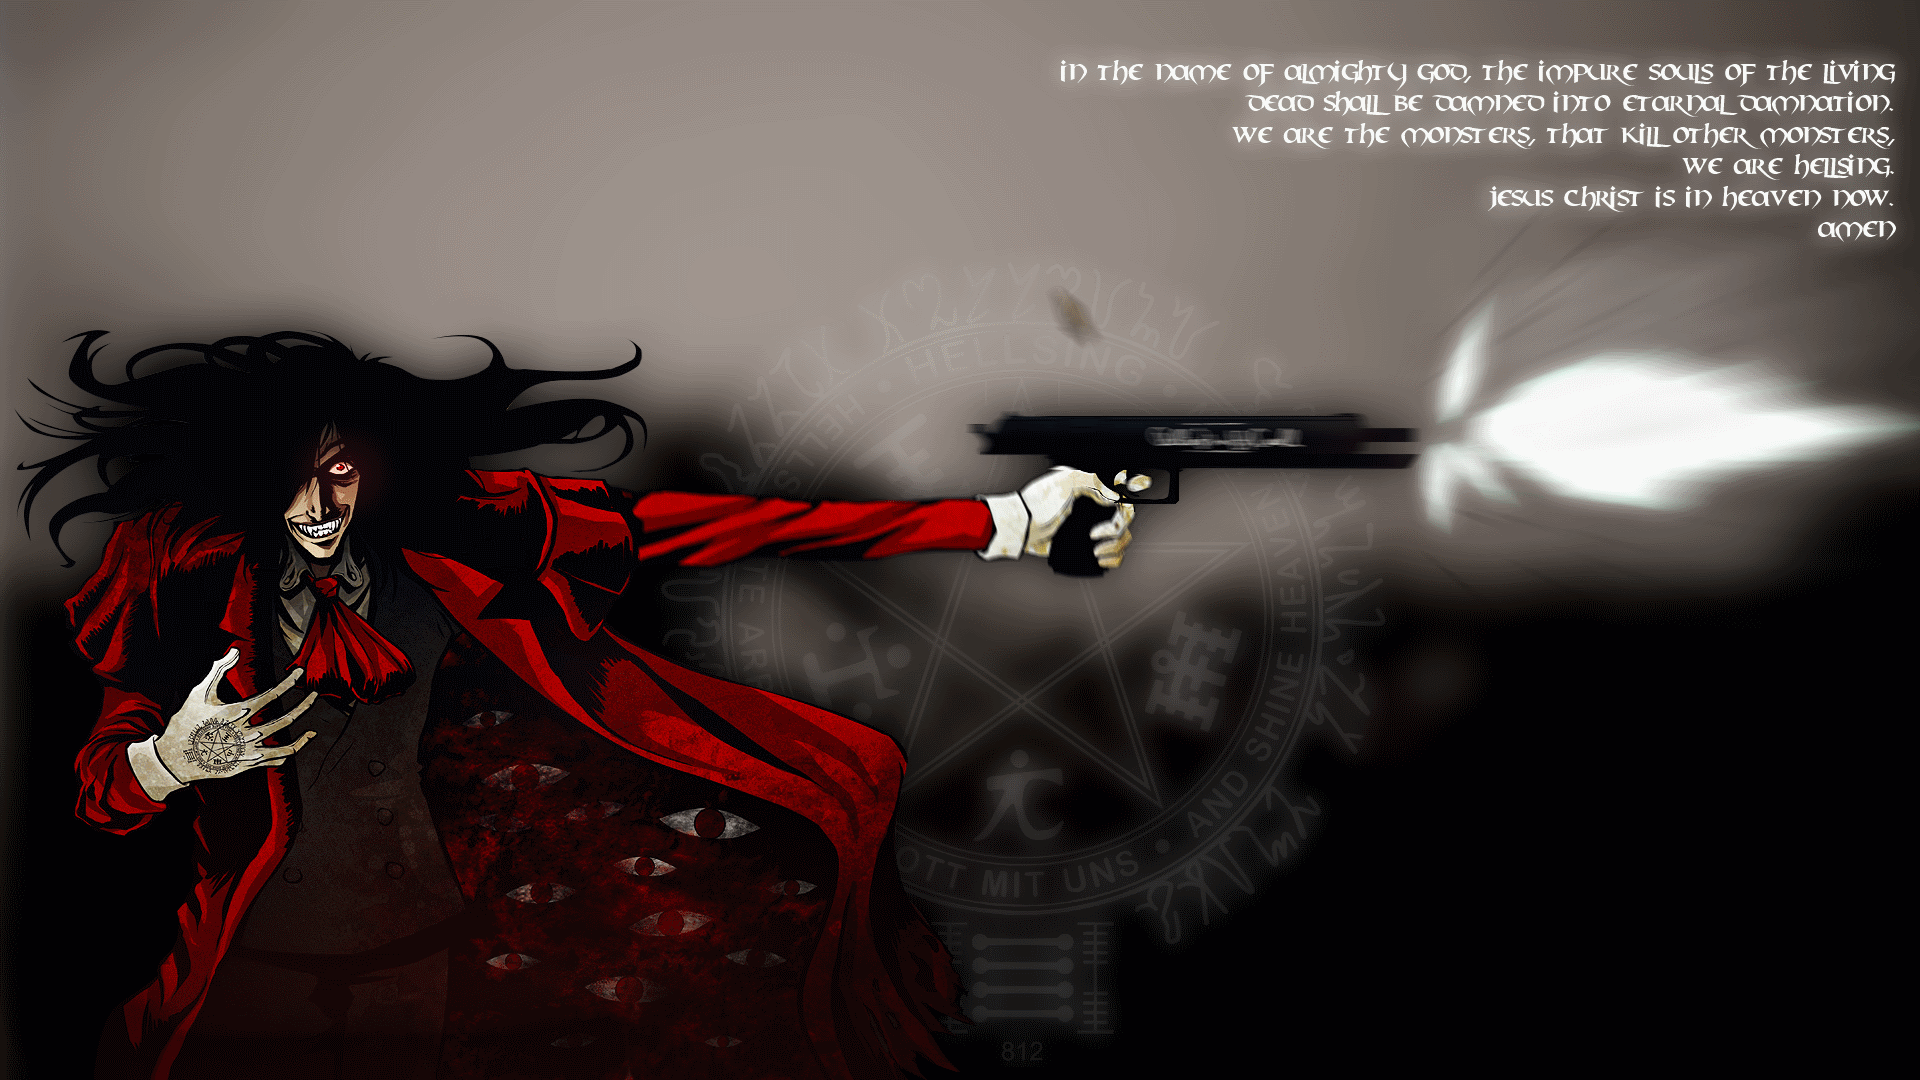 Hd Background Wallpaper 800x600: Hellsing HD Wallpaper